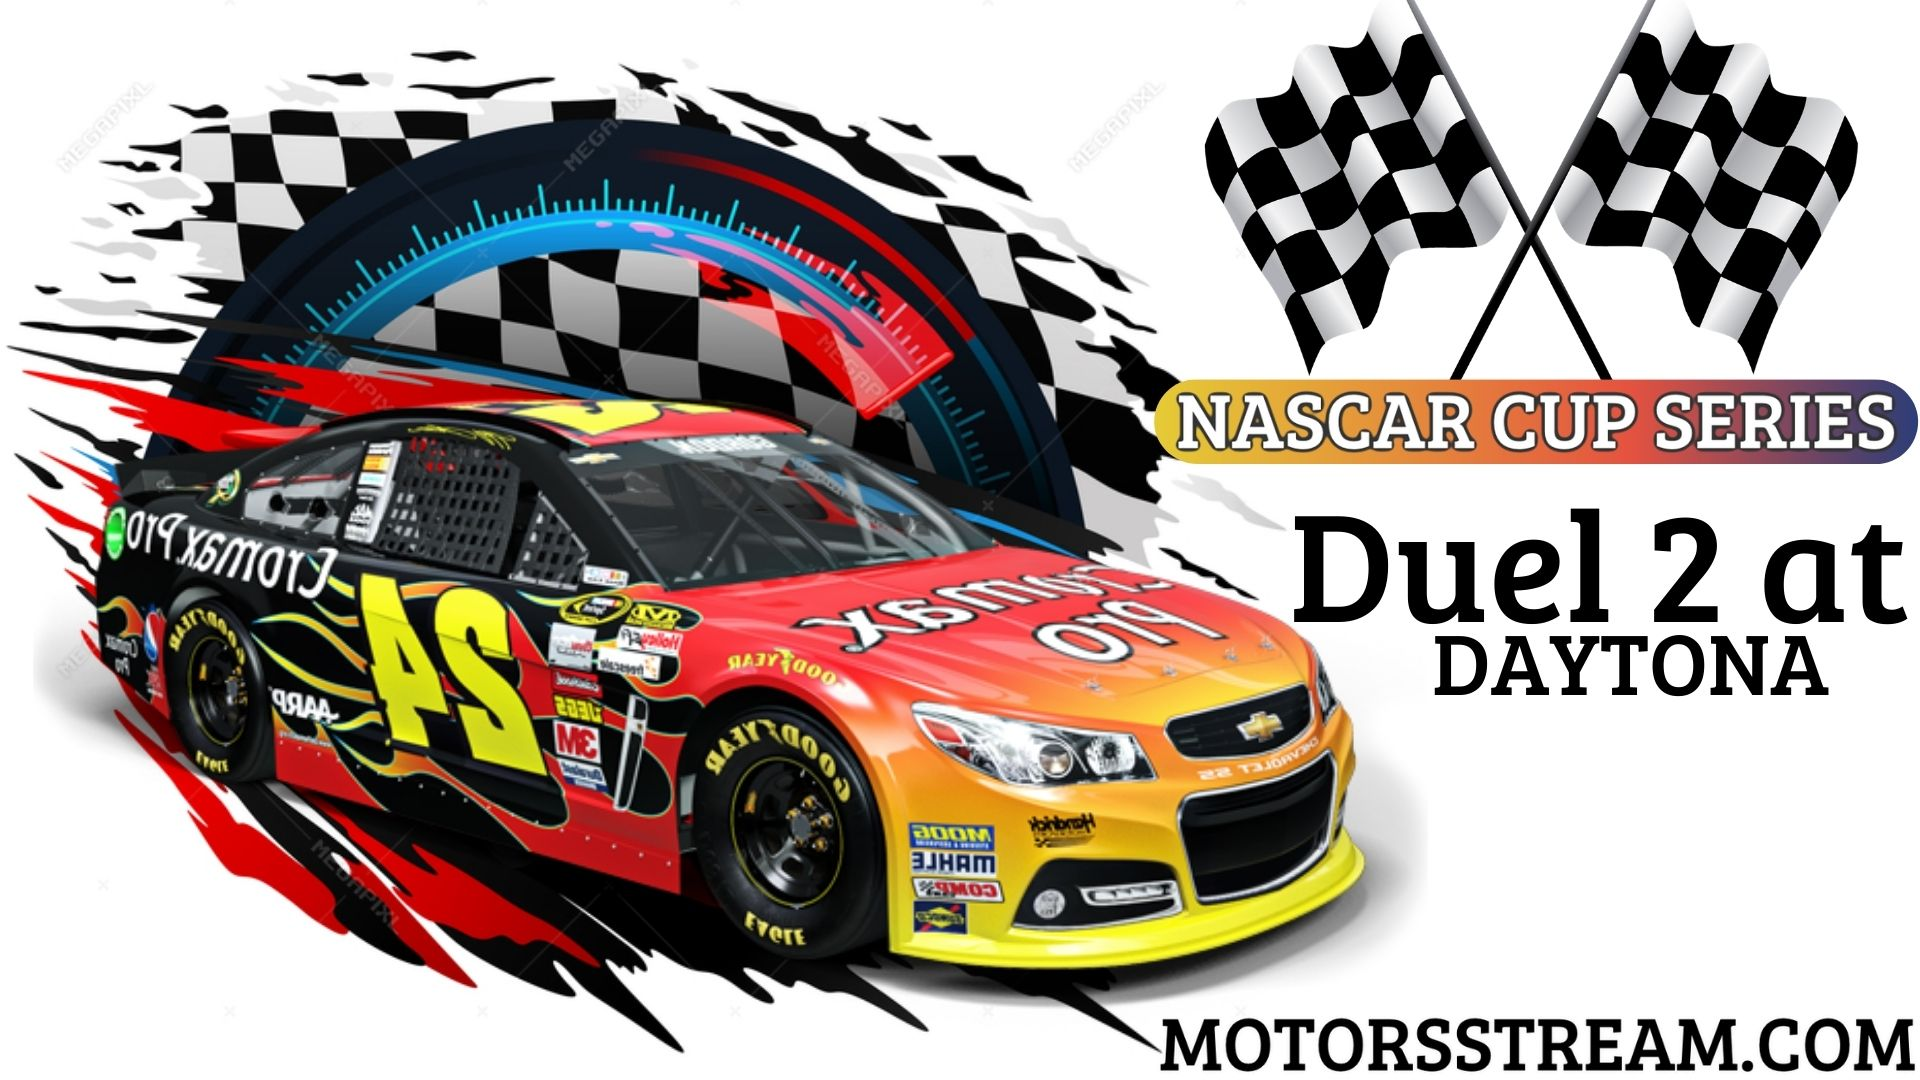 Duel 2 At Daytona Live Stream | NASCAR Cup 2021